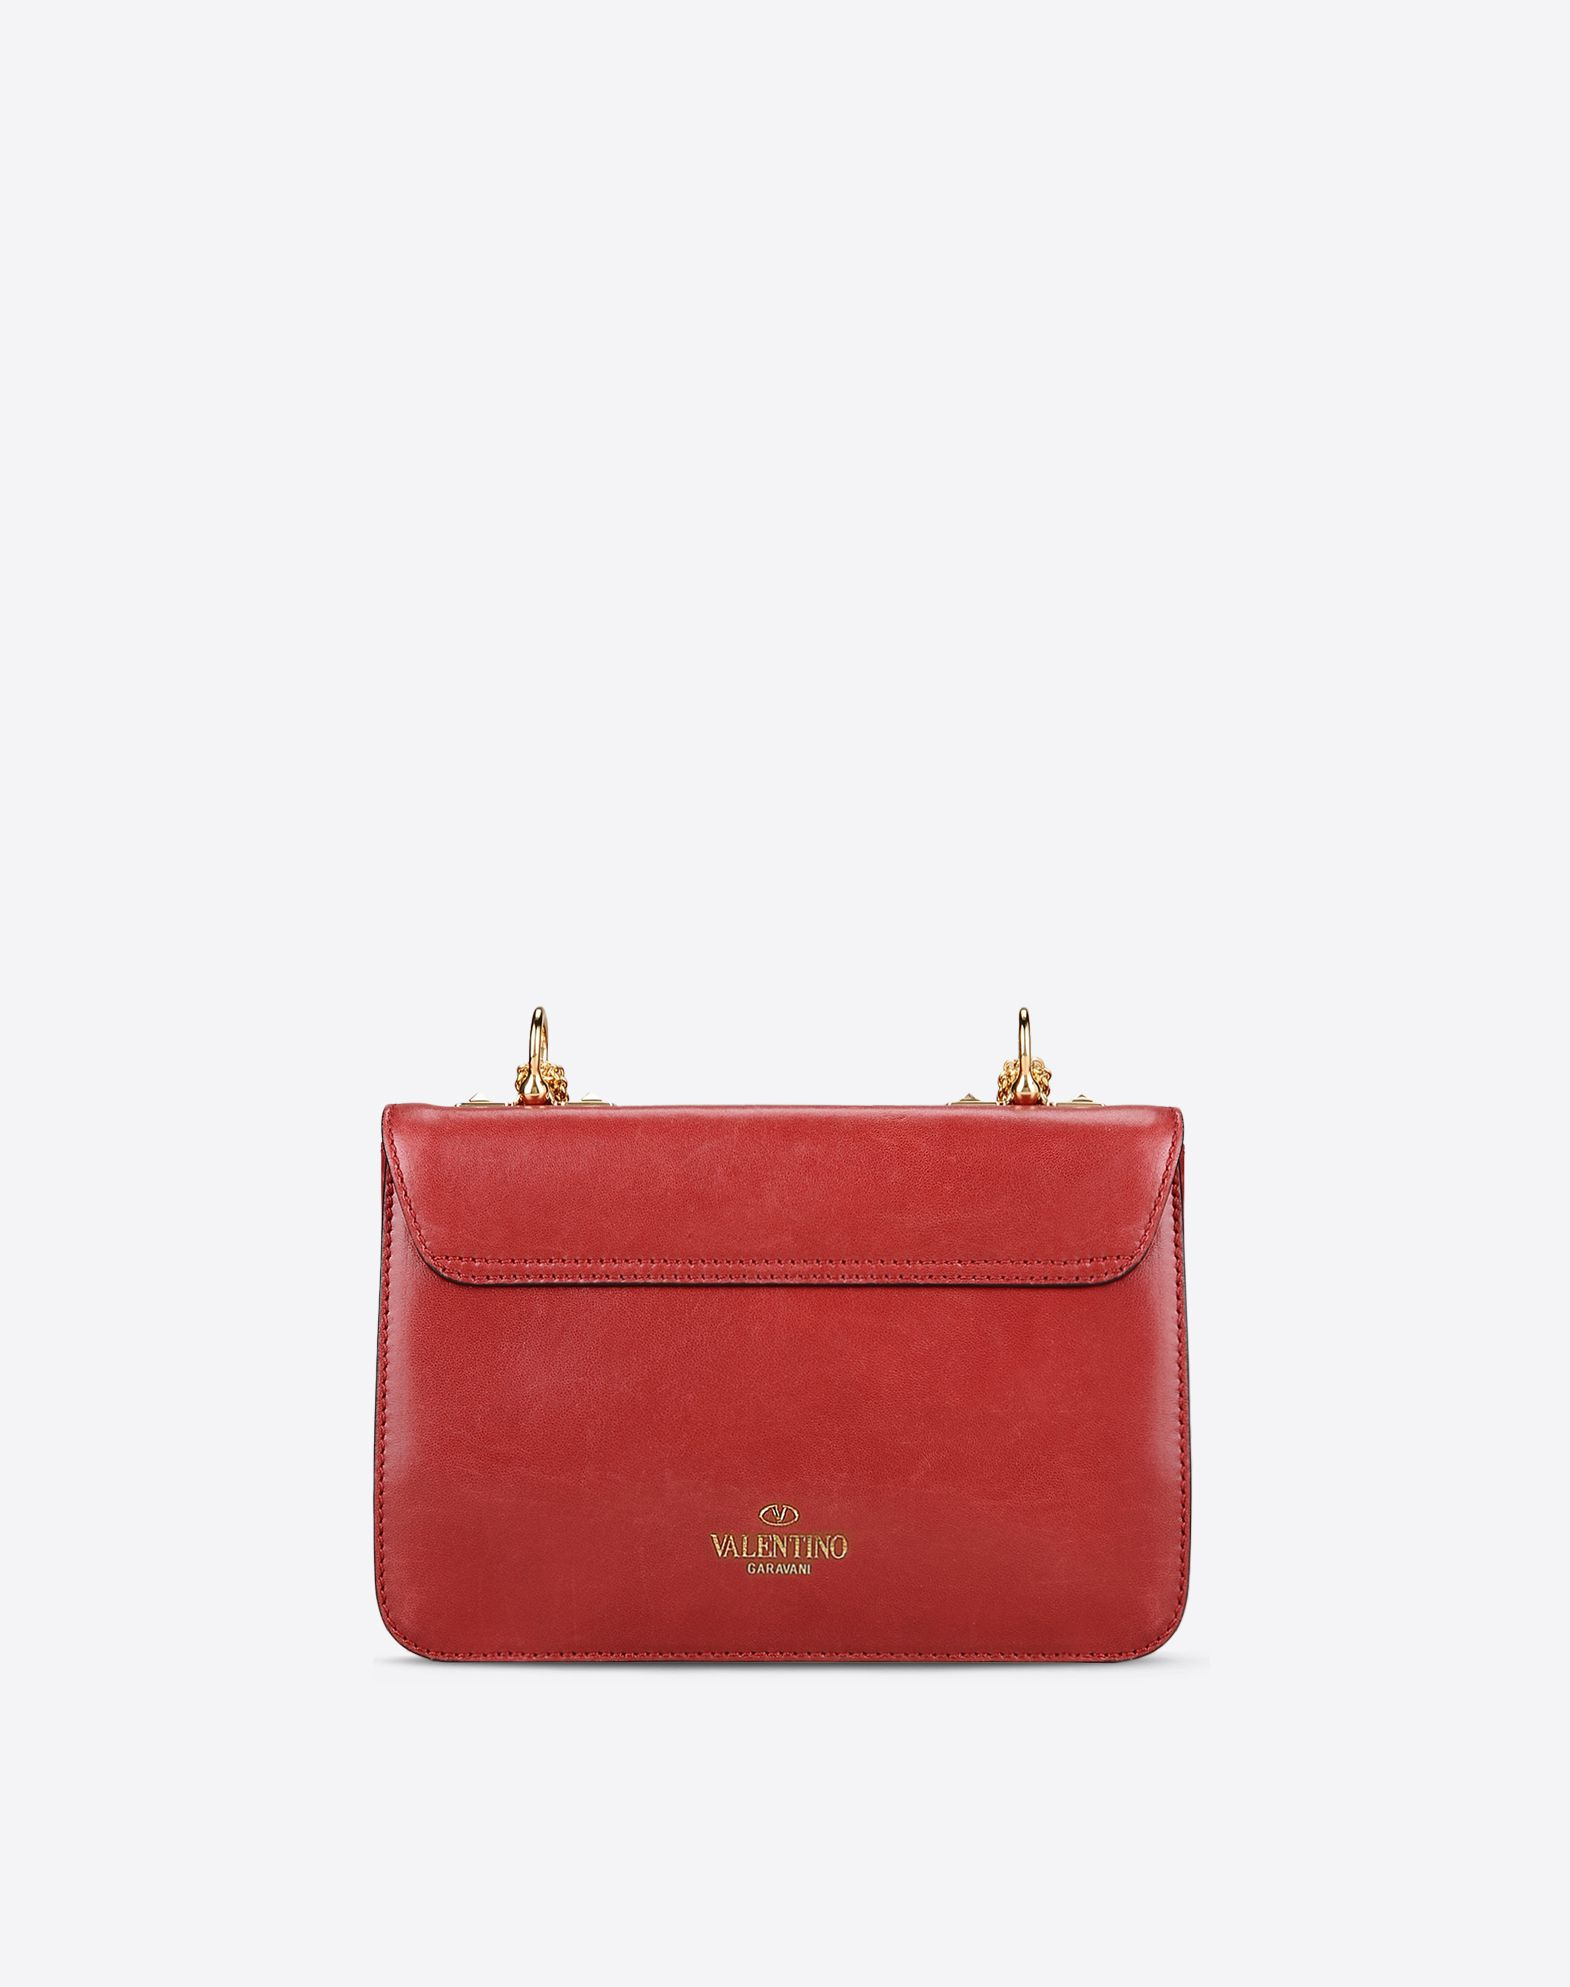 VALENTINO Logo detail Solid color Framed closure Internal compartments Metallic straps  45263905tt